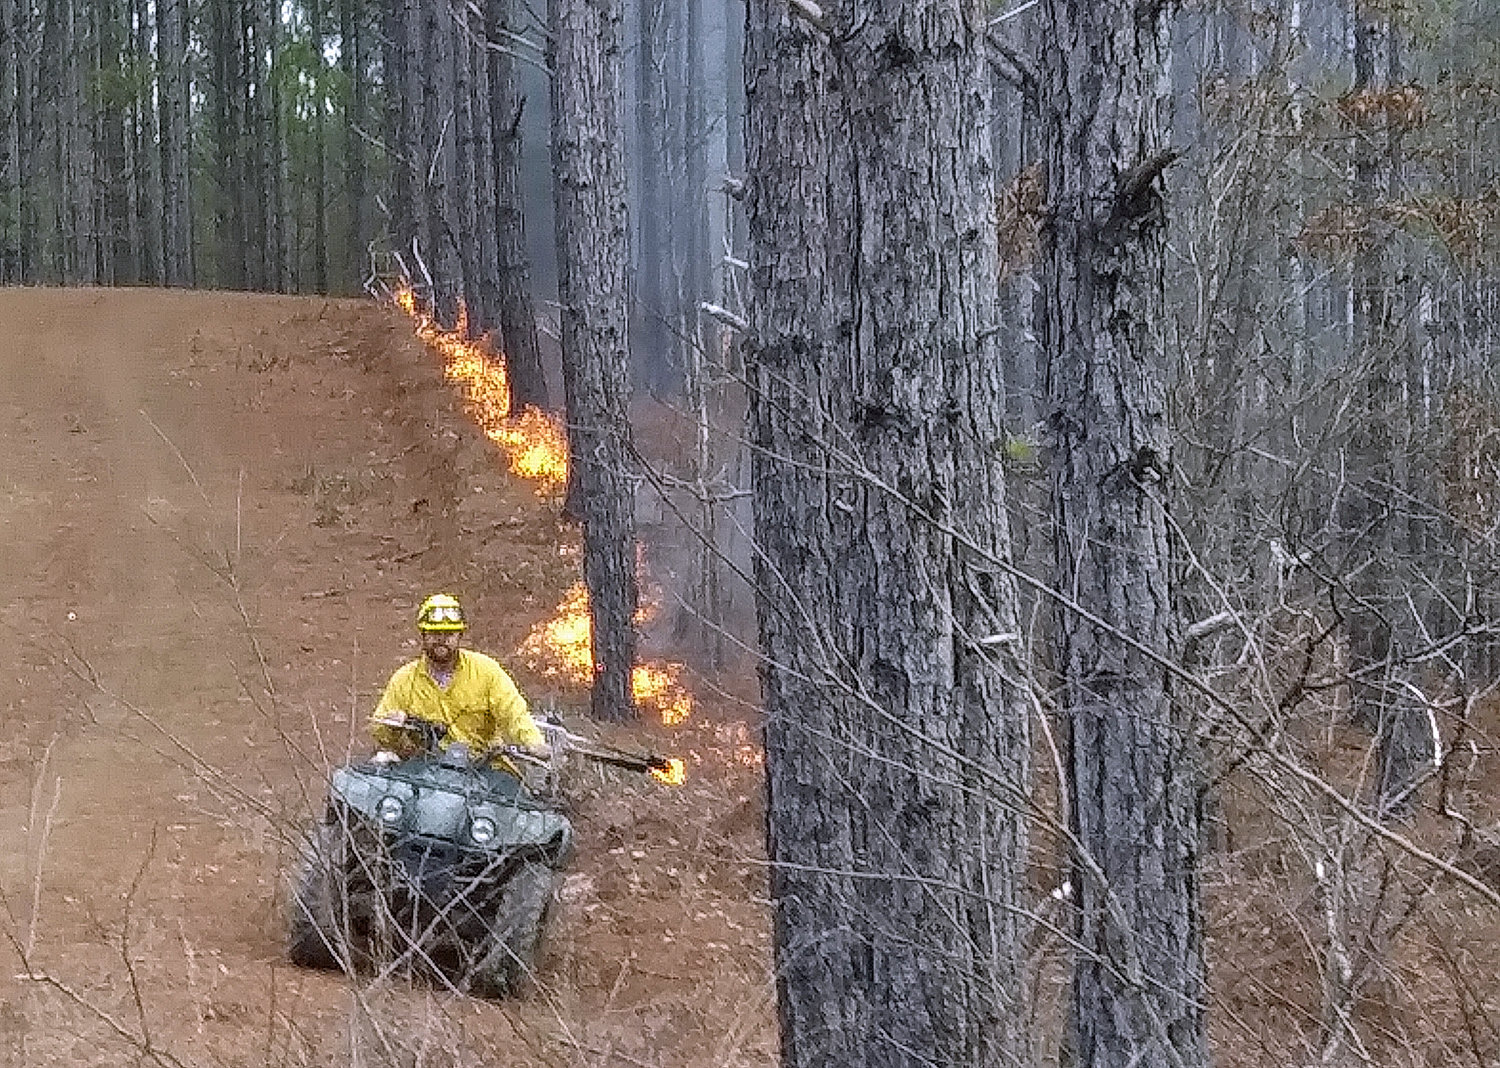 A drip torch is used to set a fire line on a section of land scheduled for a controlled burn.